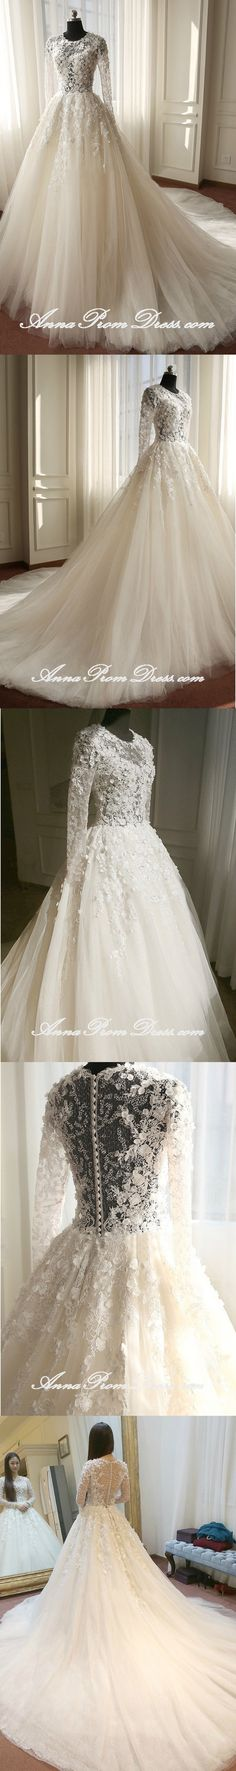 I want this dress more than ever.